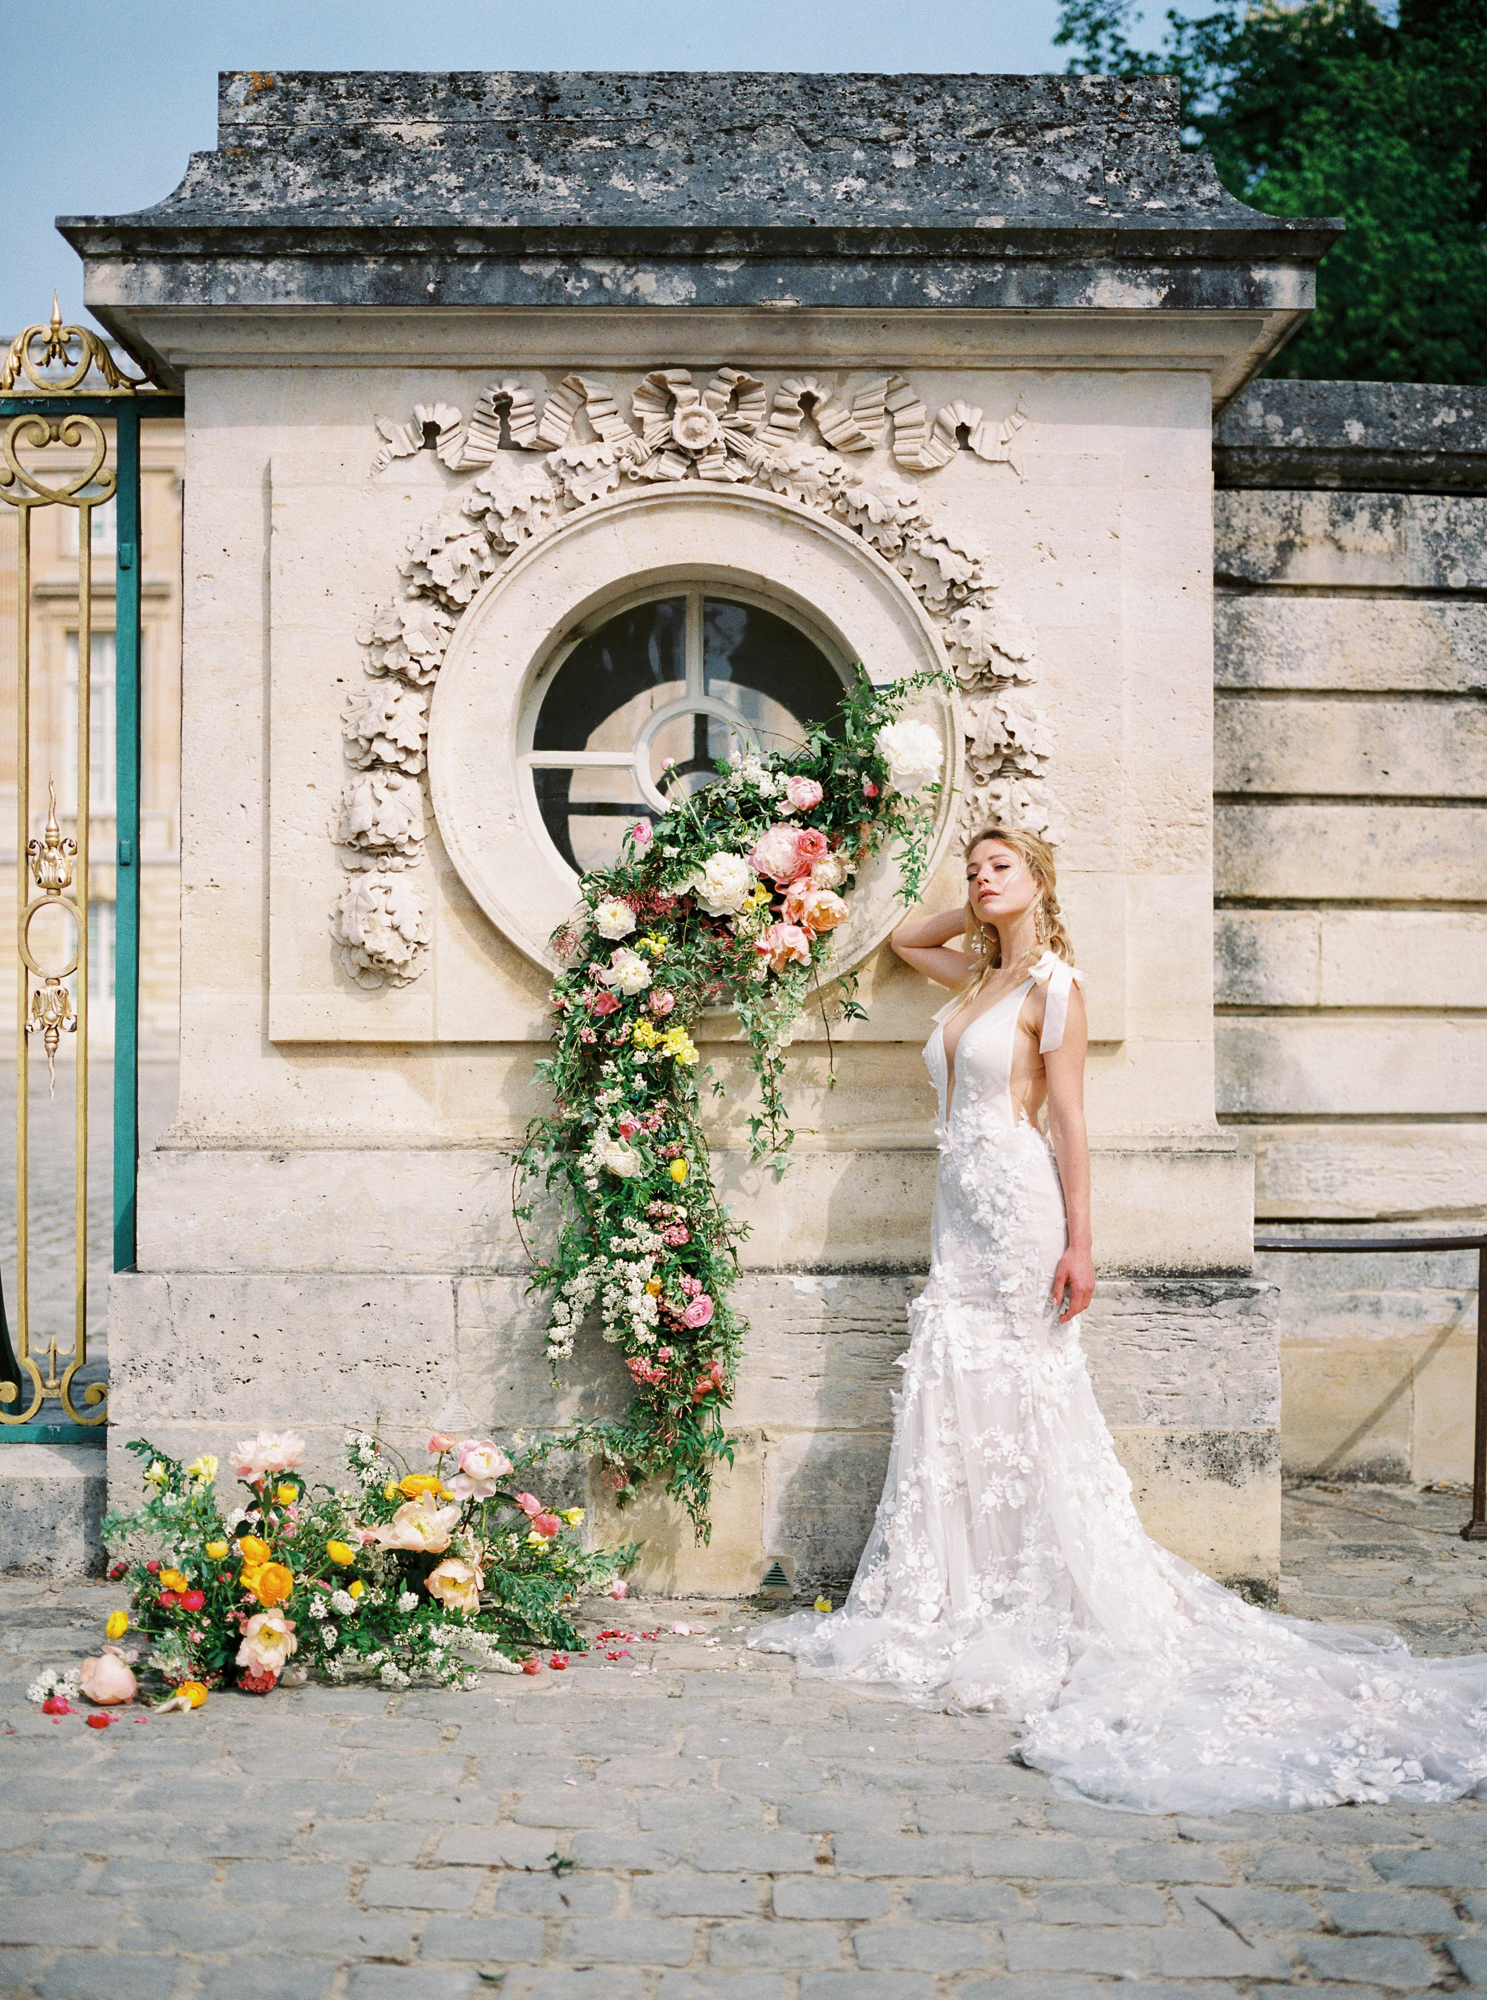 travellur_photoshoot__summer_in_versailles_wedding_flowers_bridal_luxe_shoot_floral_france_isibeal_studio_bride.jpg